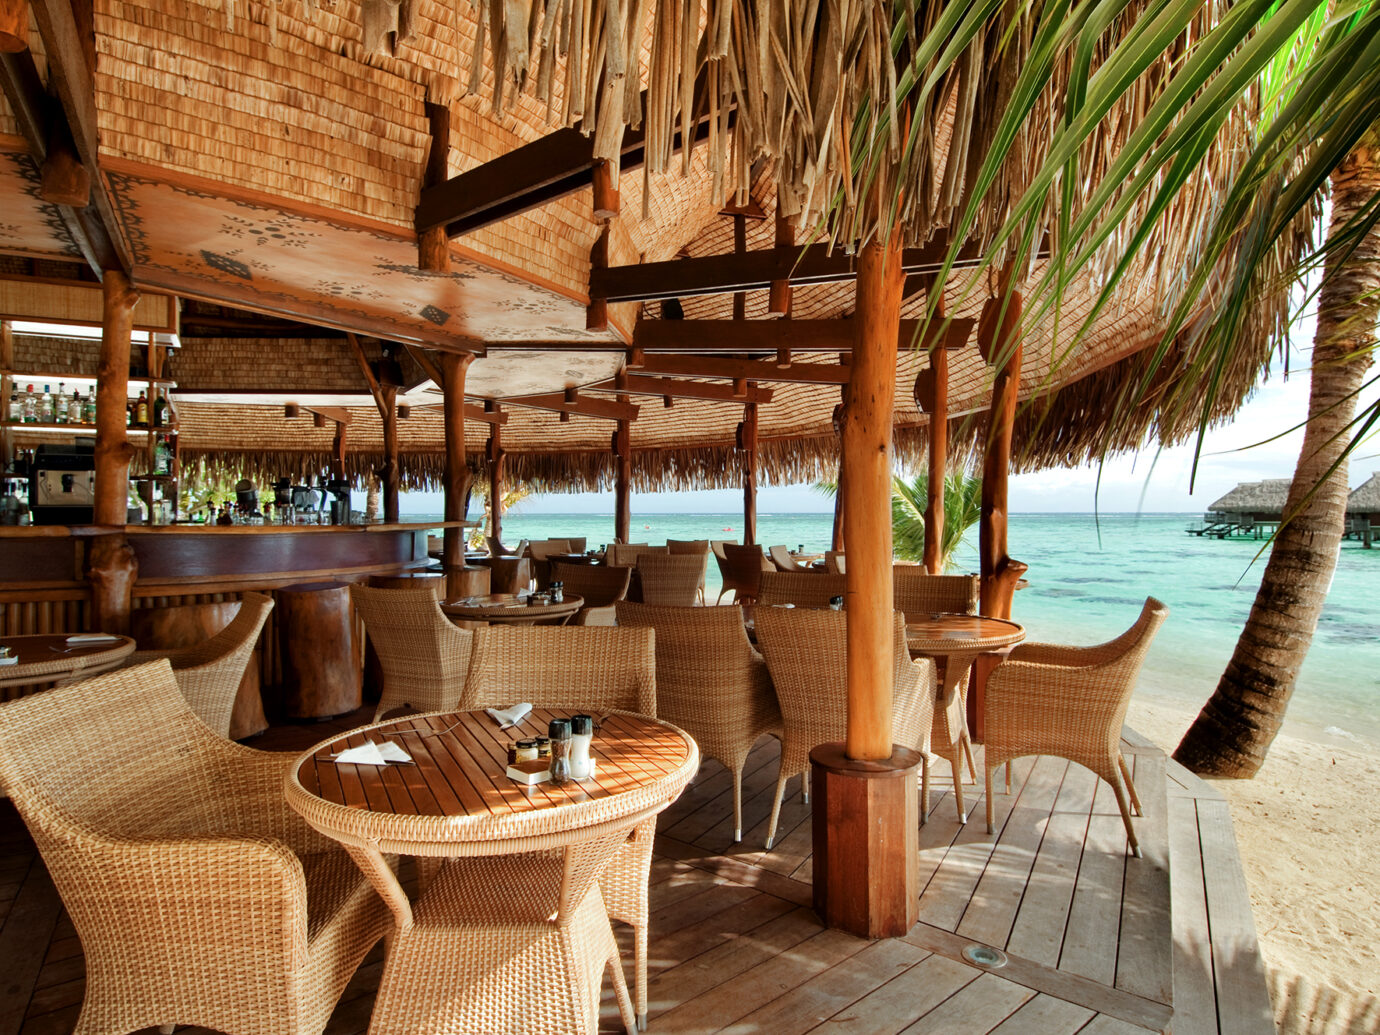 Outdoor bar at Hilton Moorea